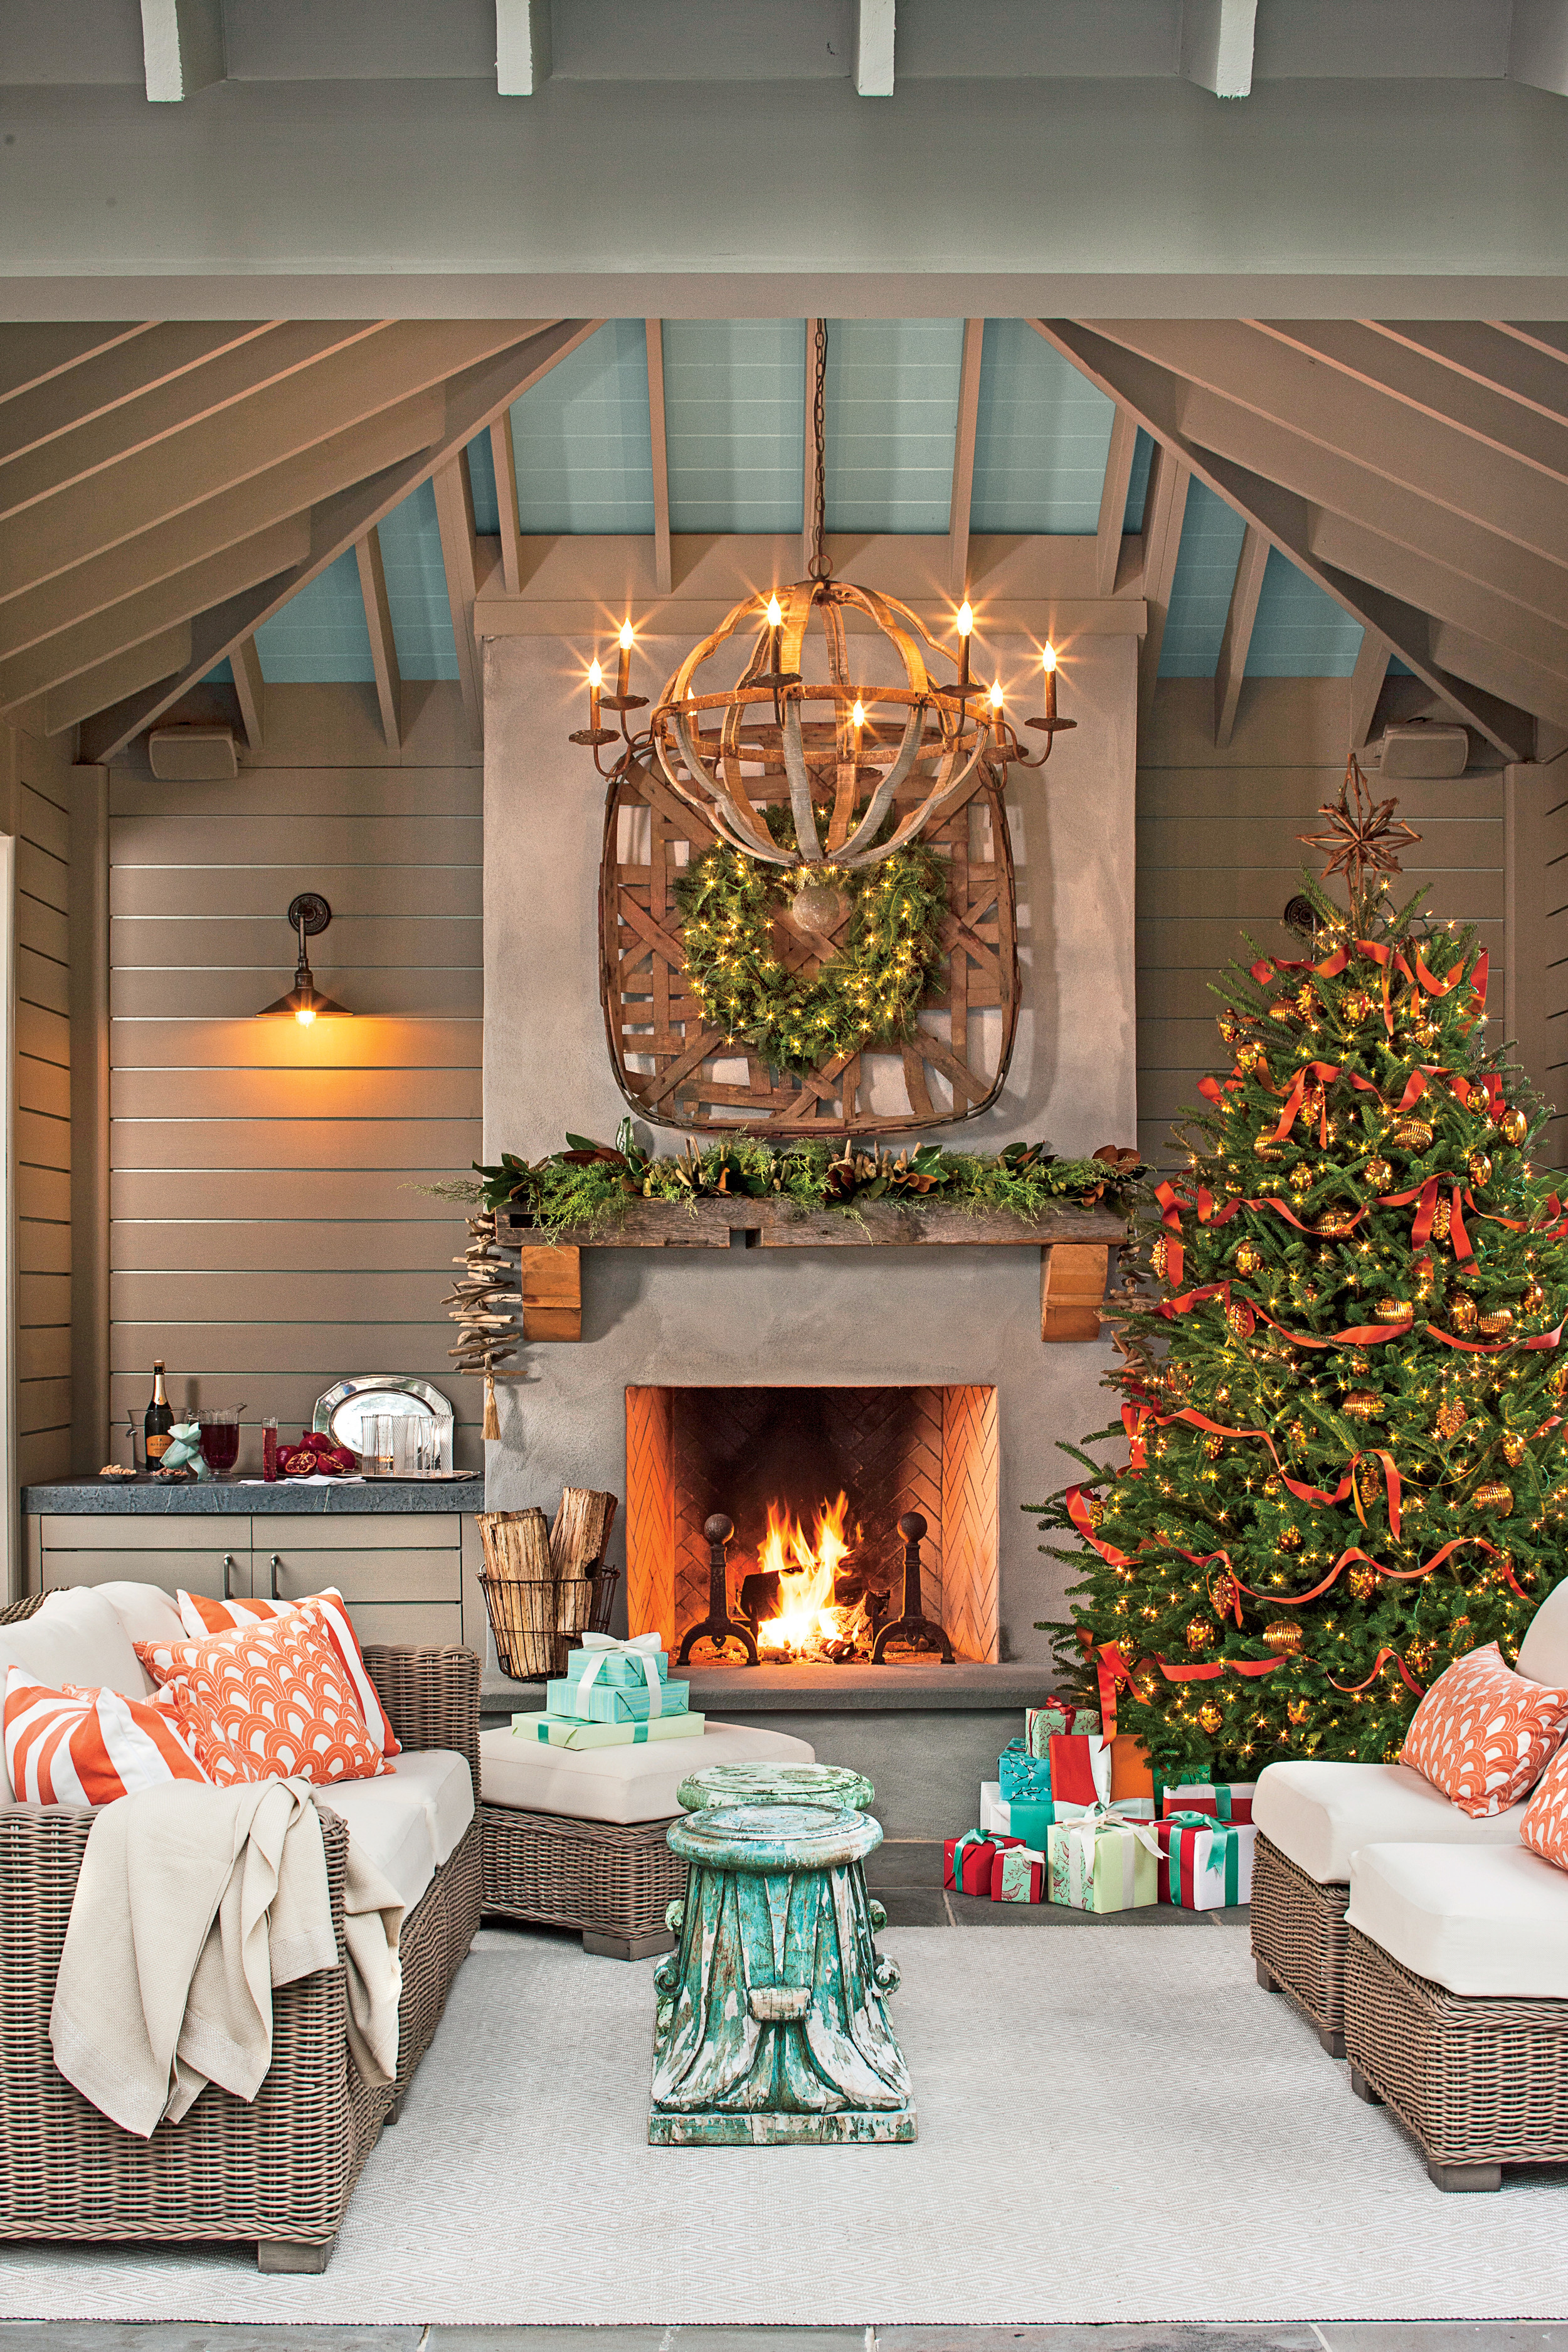 Better homes and gardens christmas decorating ideas - Best Ideas About Better Homes And Gardens Christmas Decorating Ideas With Home And Garden Christmas Decorating Ideas